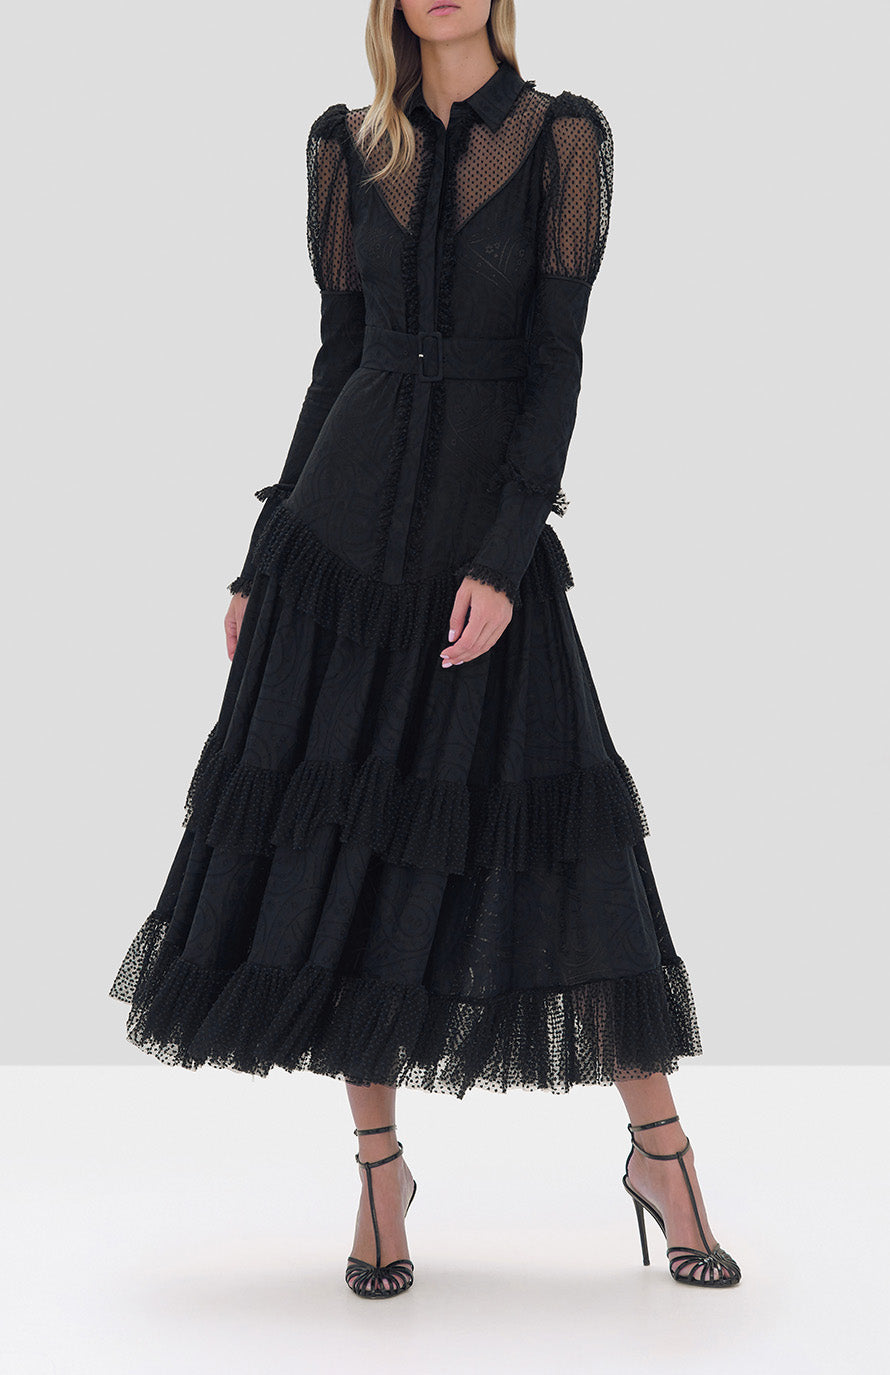 Alexis Evarra Dress in Black from the Fall Winter 2019 Ready To Wear Collection - Rear View